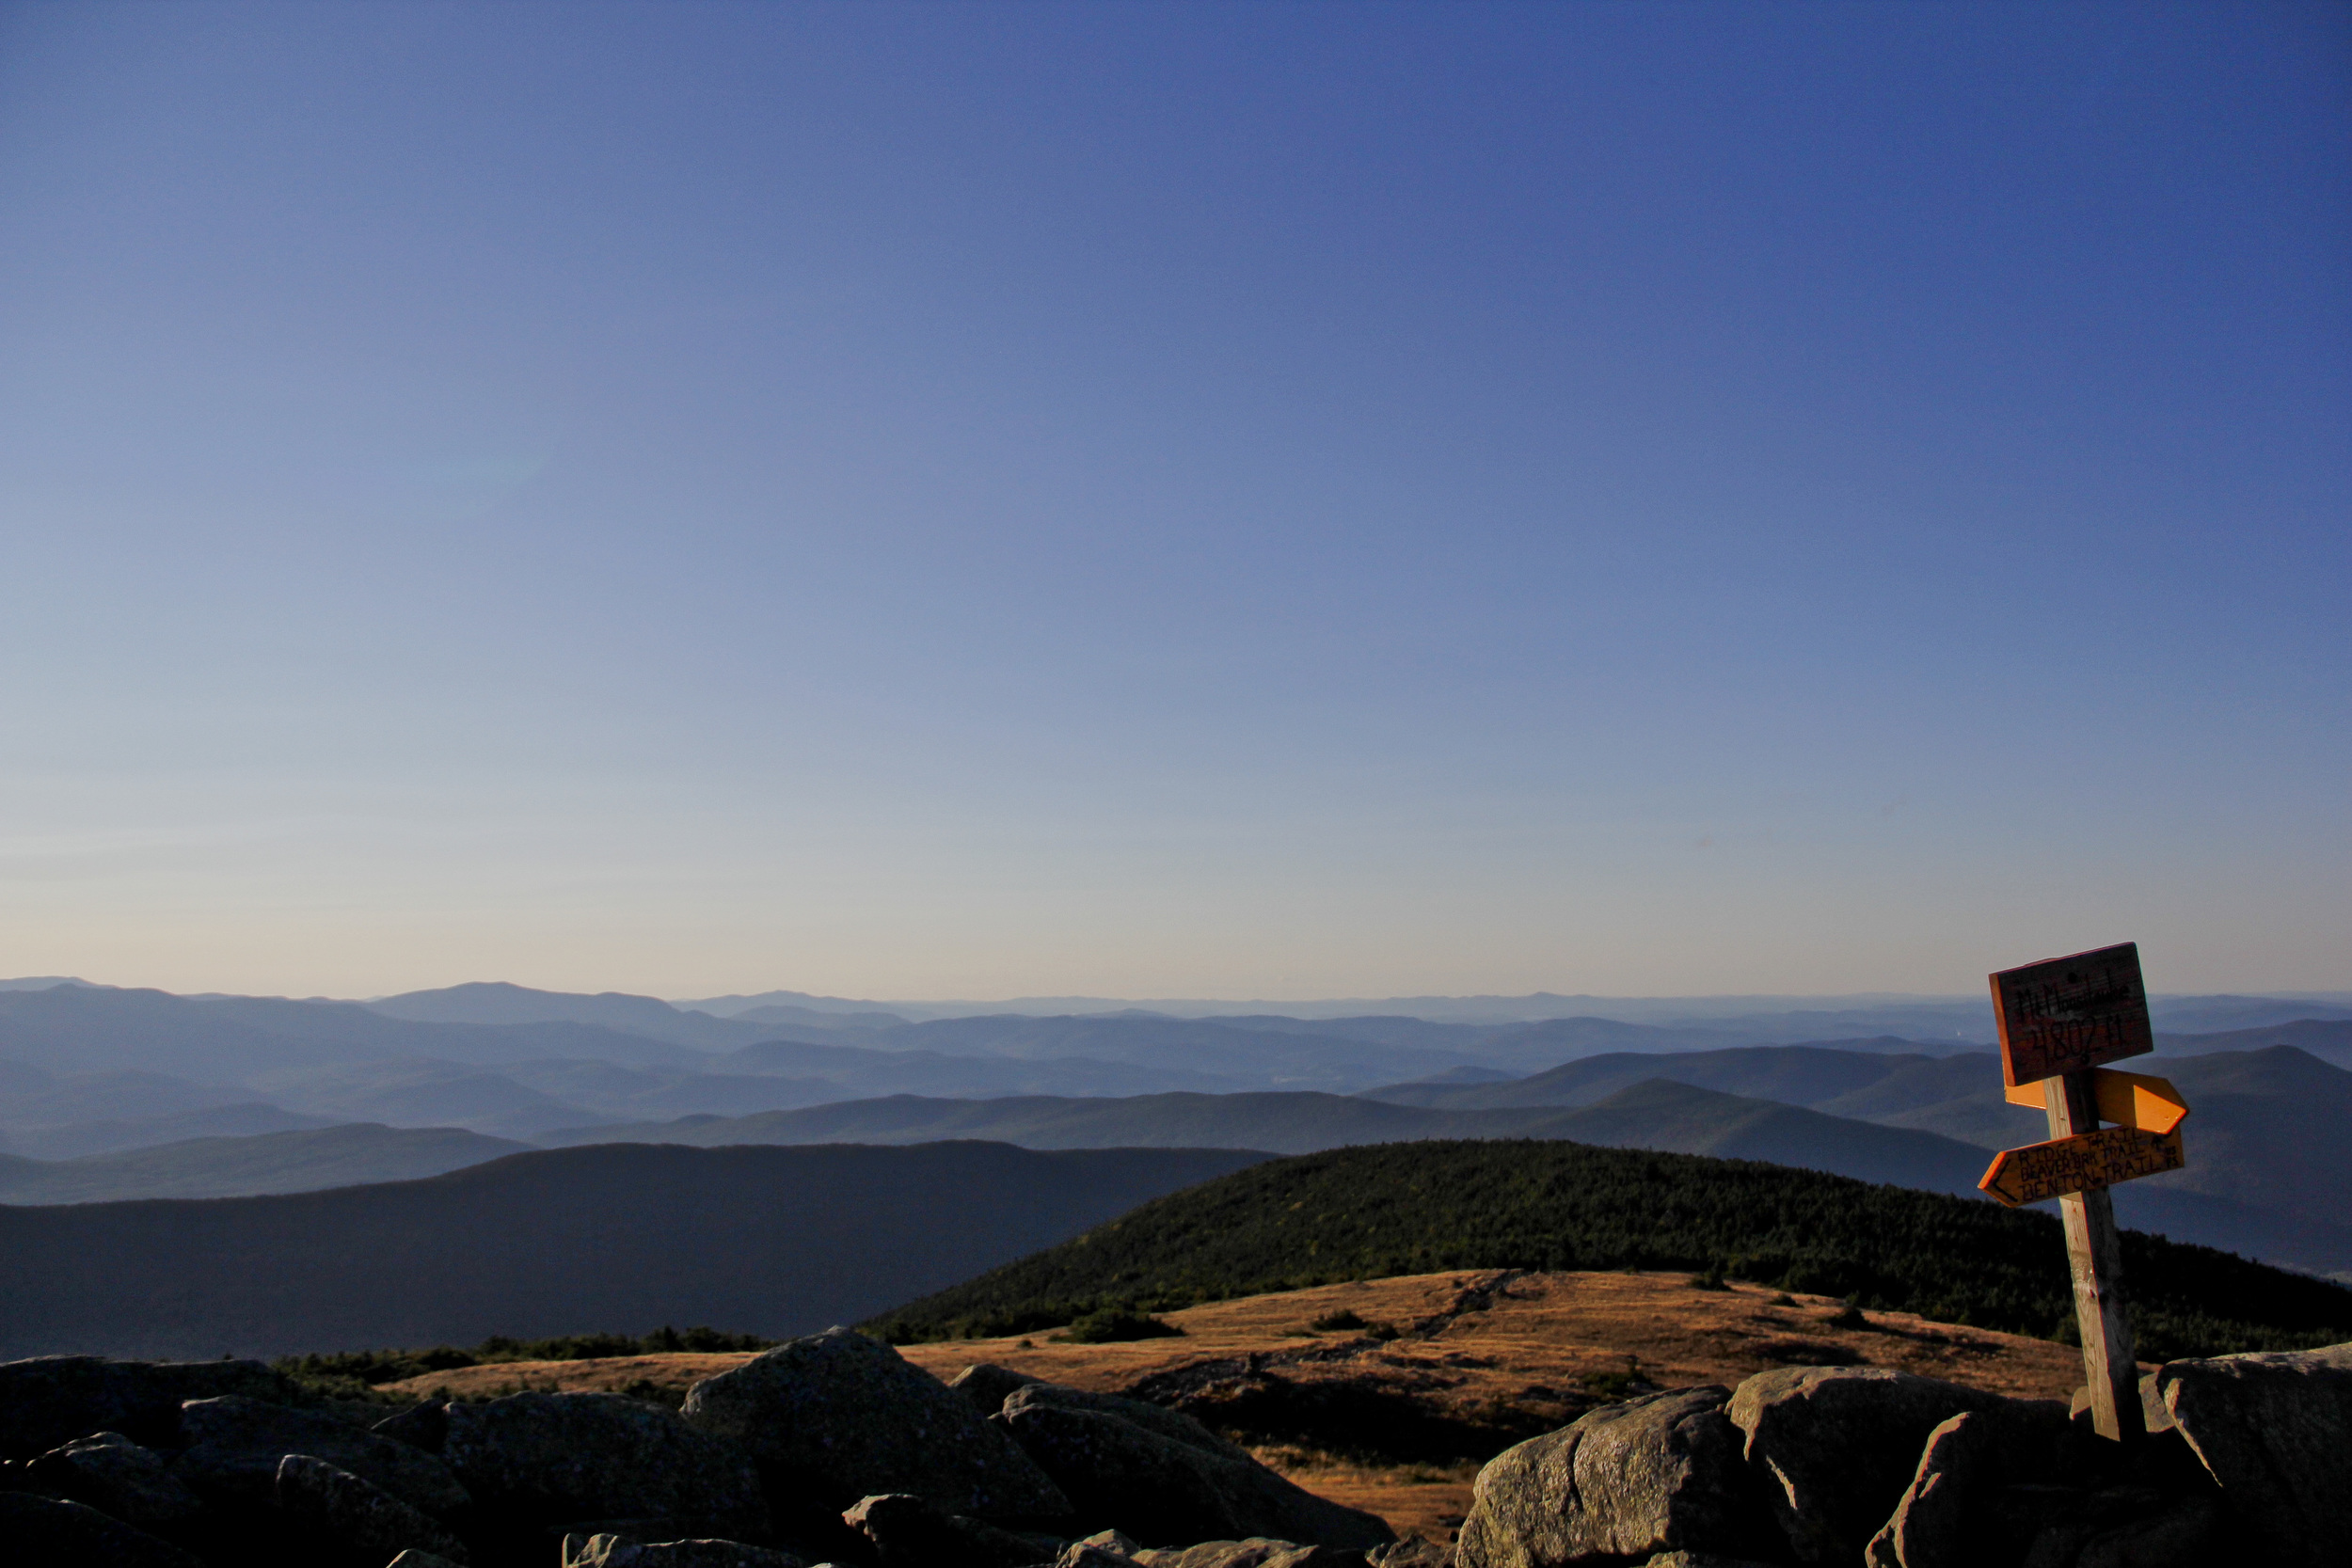 Welcome to the White Mountains, New Hampshire!